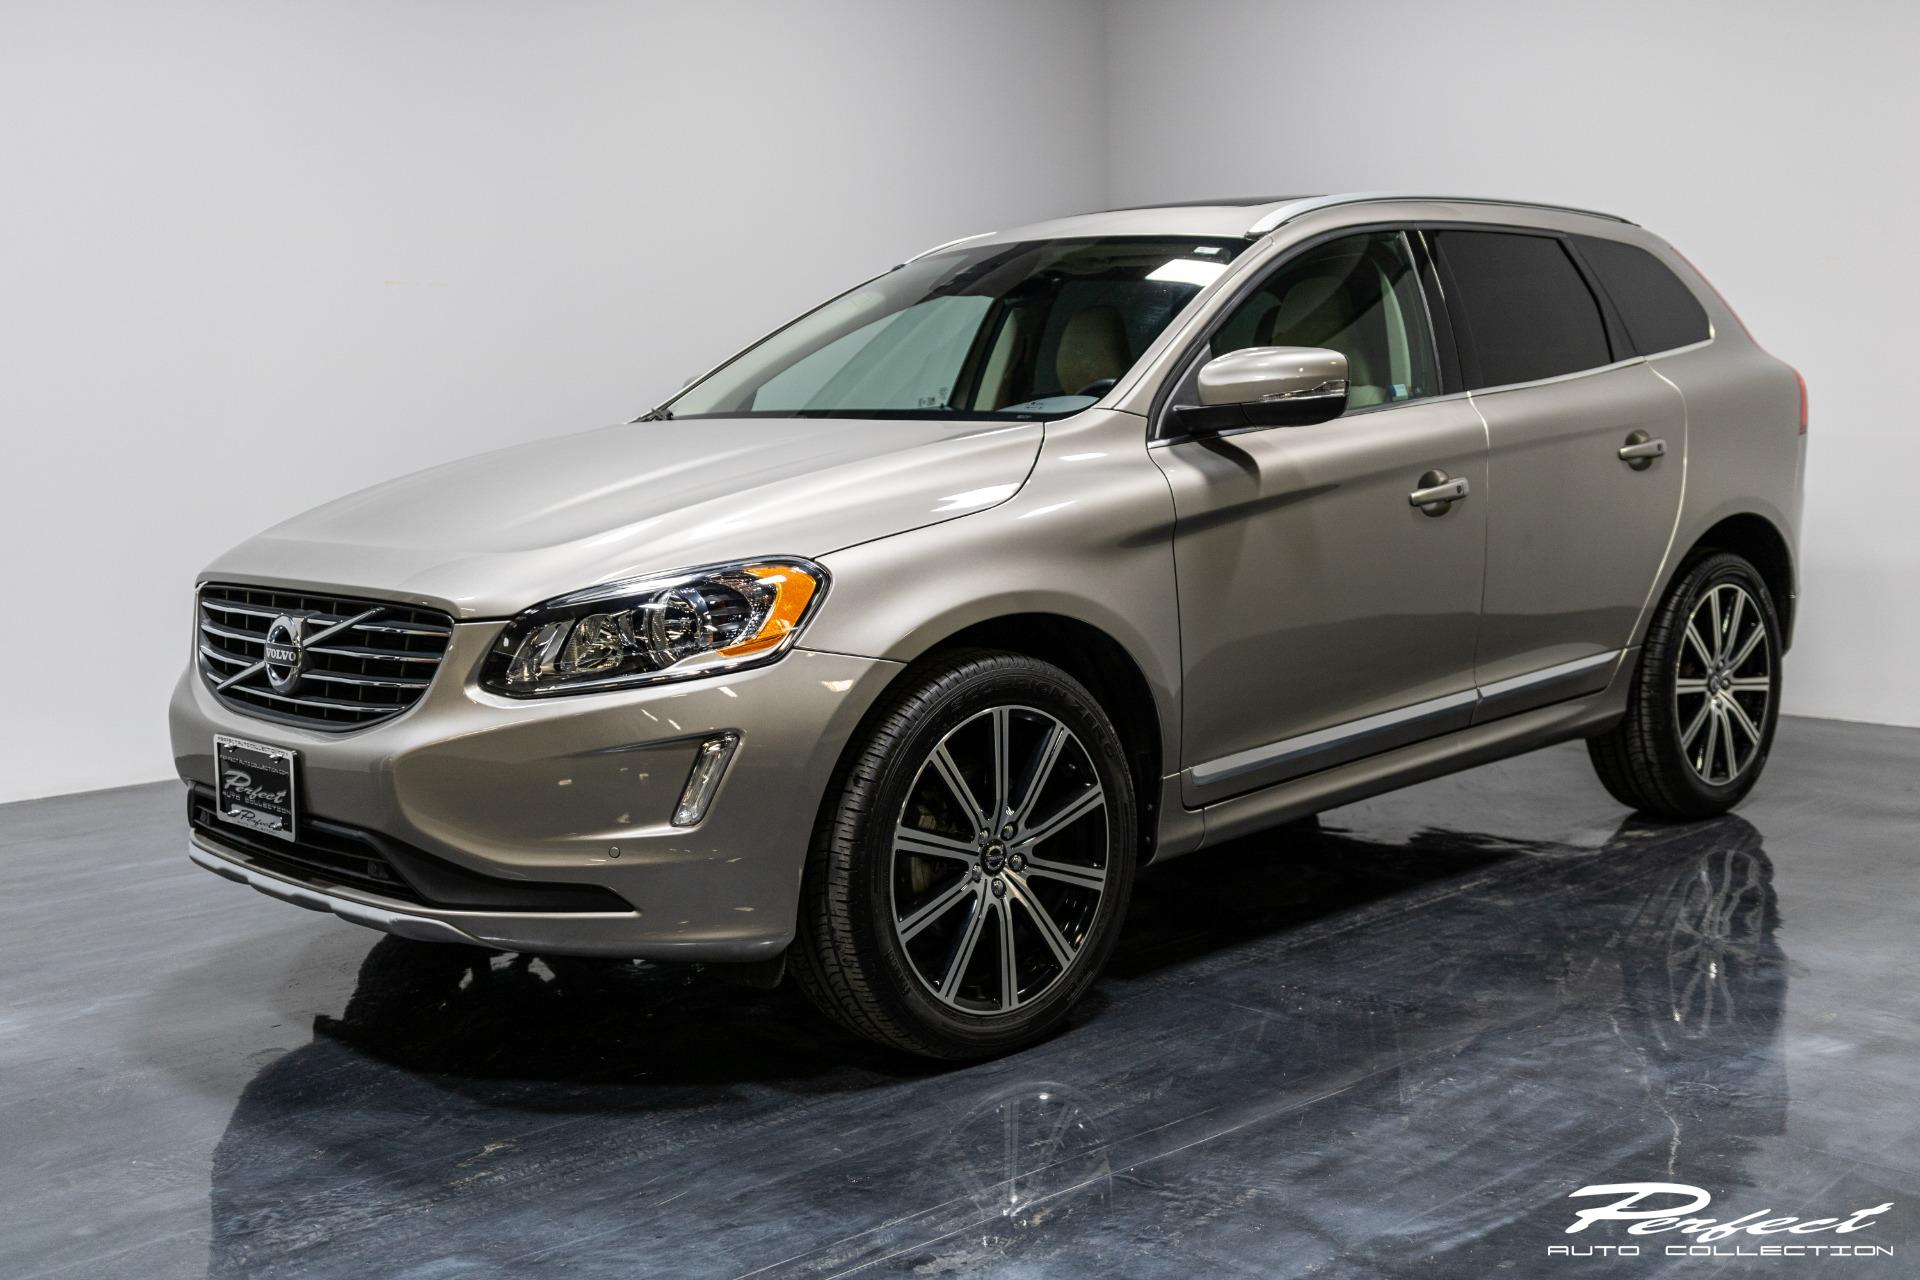 Used 2016 Volvo XC60 T6 Drive-E for sale Sold at Perfect Auto Collection in Akron OH 44310 1